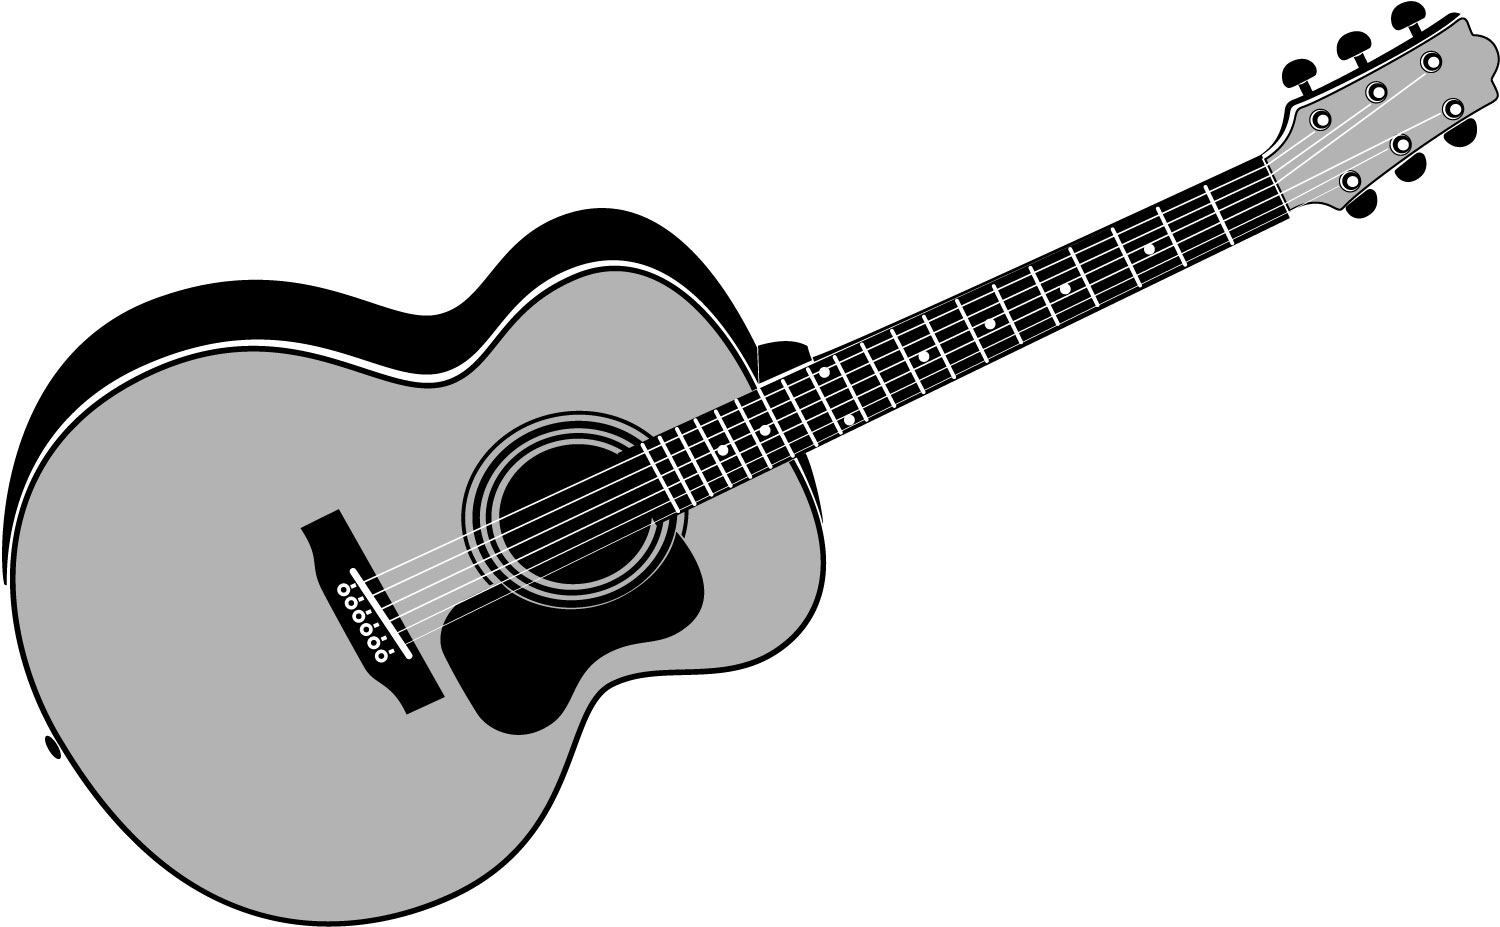 Acoustic Guitar Clip Art Black And White - ClipArt Best